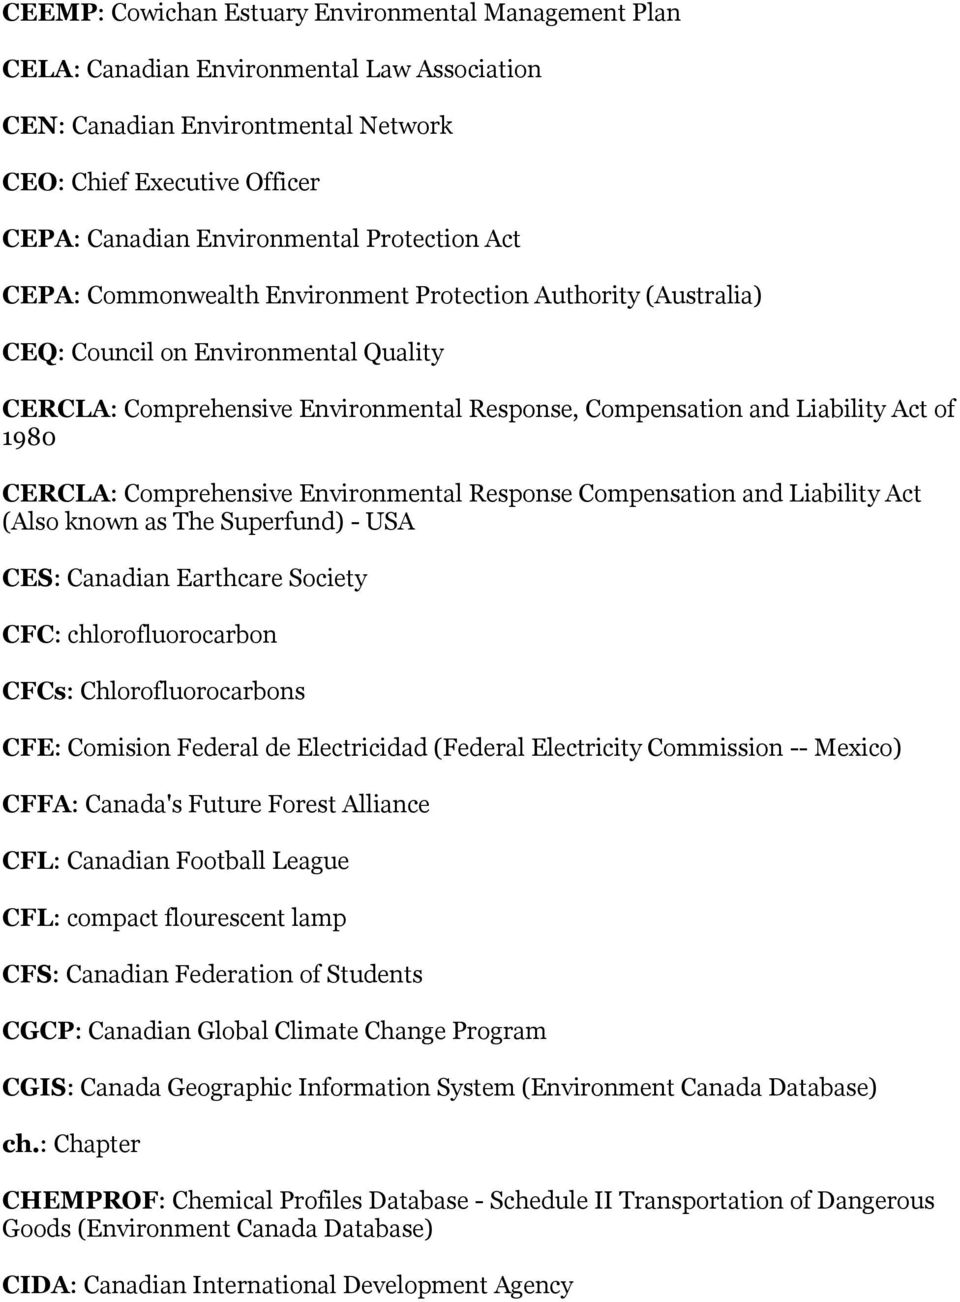 1980 CERCLA: Comprehensive Environmental Response Compensation and Liability Act (Also known as The Superfund) - USA CES: Canadian Earthcare Society CFC: chlorofluorocarbon CFCs: Chlorofluorocarbons